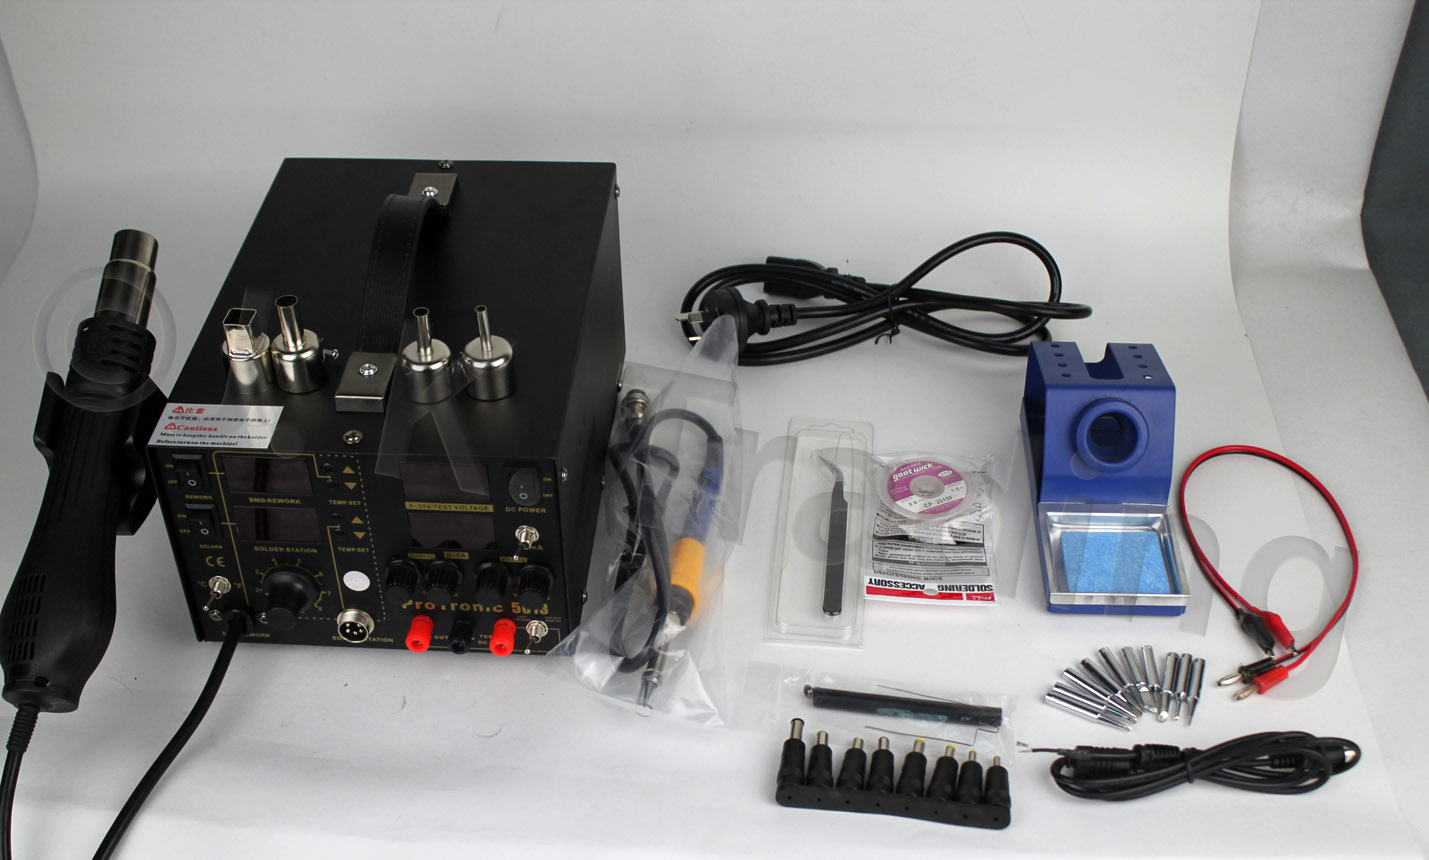 Four soldering irons now available on JK Trading